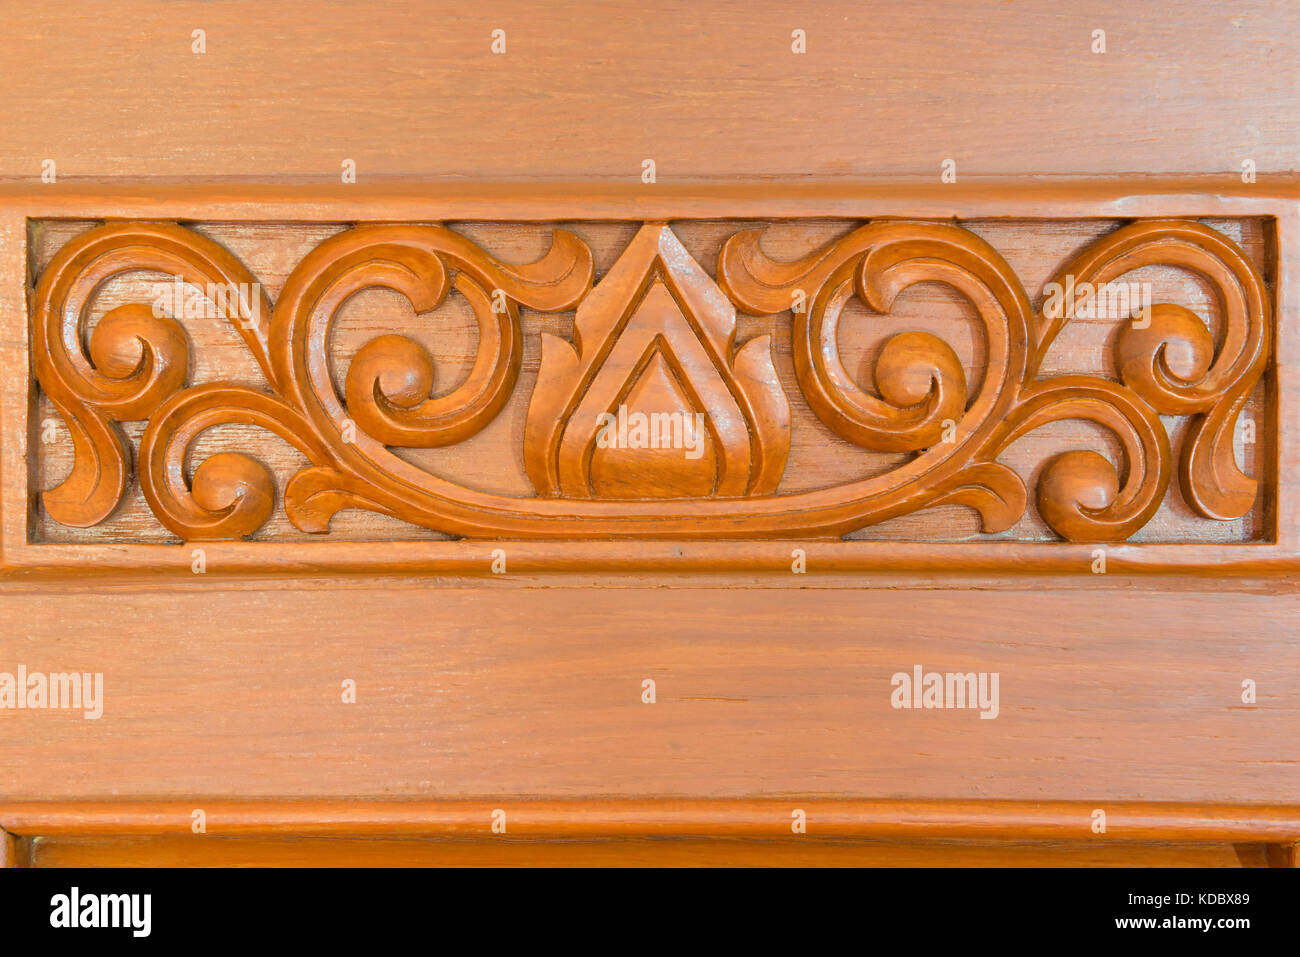 wooden door with carving of handmade close-up pattern  sc 1 st  Alamy & wooden door with carving of handmade close-up pattern Stock Photo ...